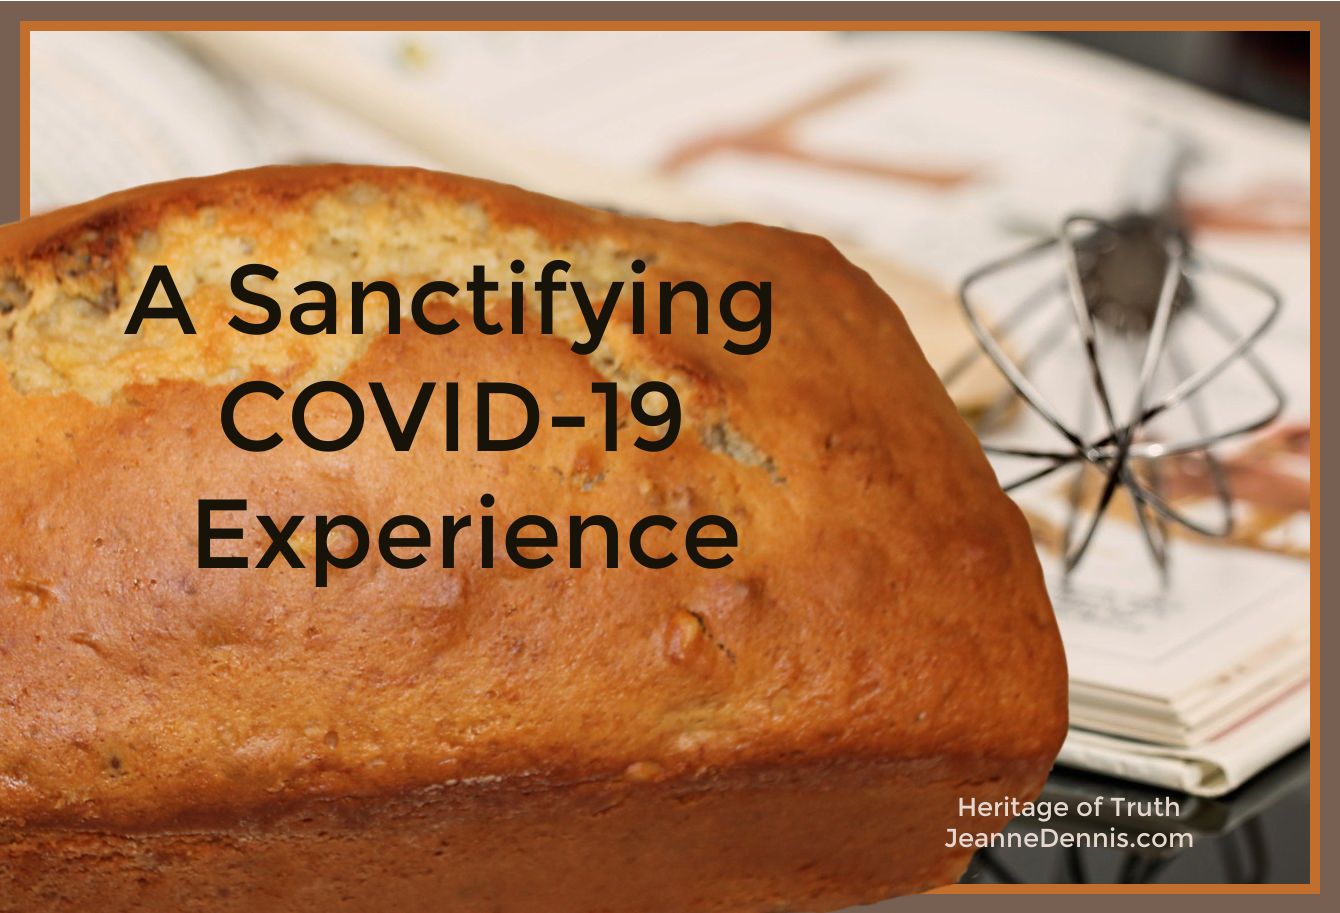 A Sanctifying COVID-19 Experience, Heritage of Truth, JeanneDennis.com